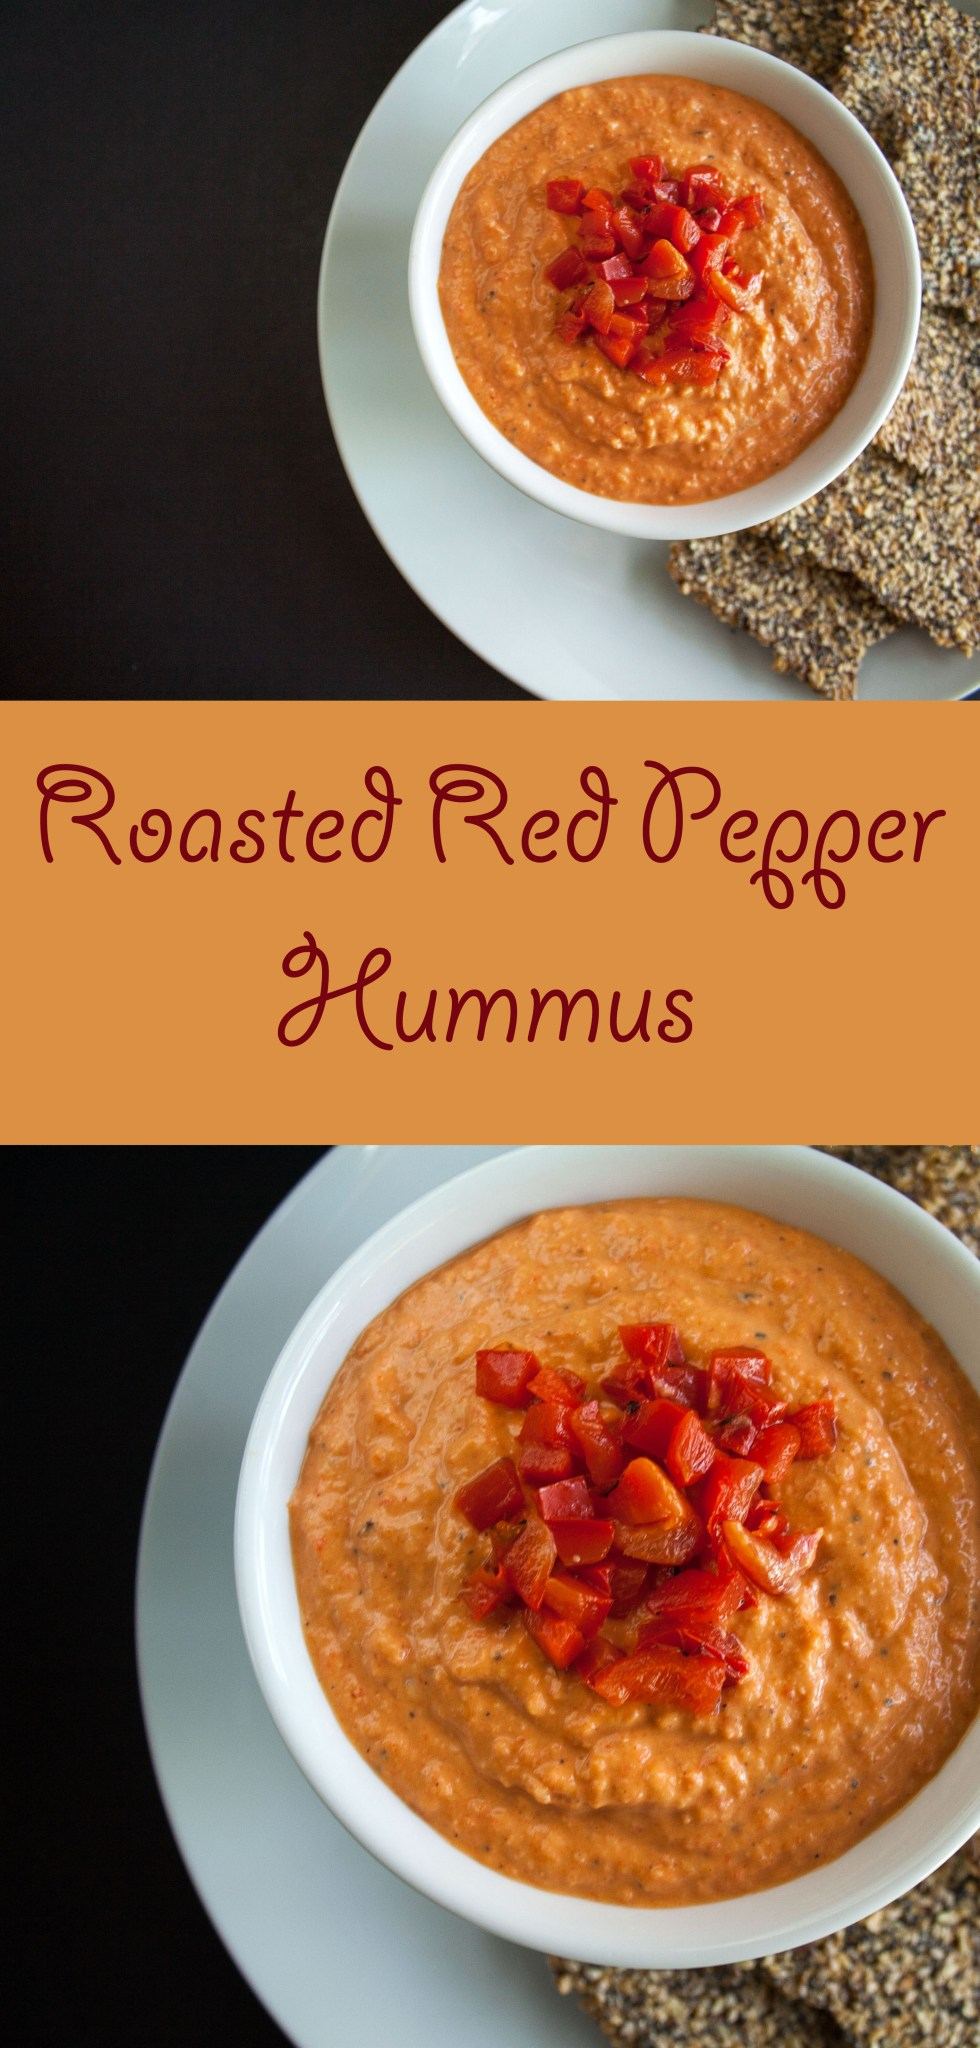 Roasted Red Pepper Hummus (vegan, gluten free) - This hummus is not only easy to make, but it is better than store bought, and costs a lot less.